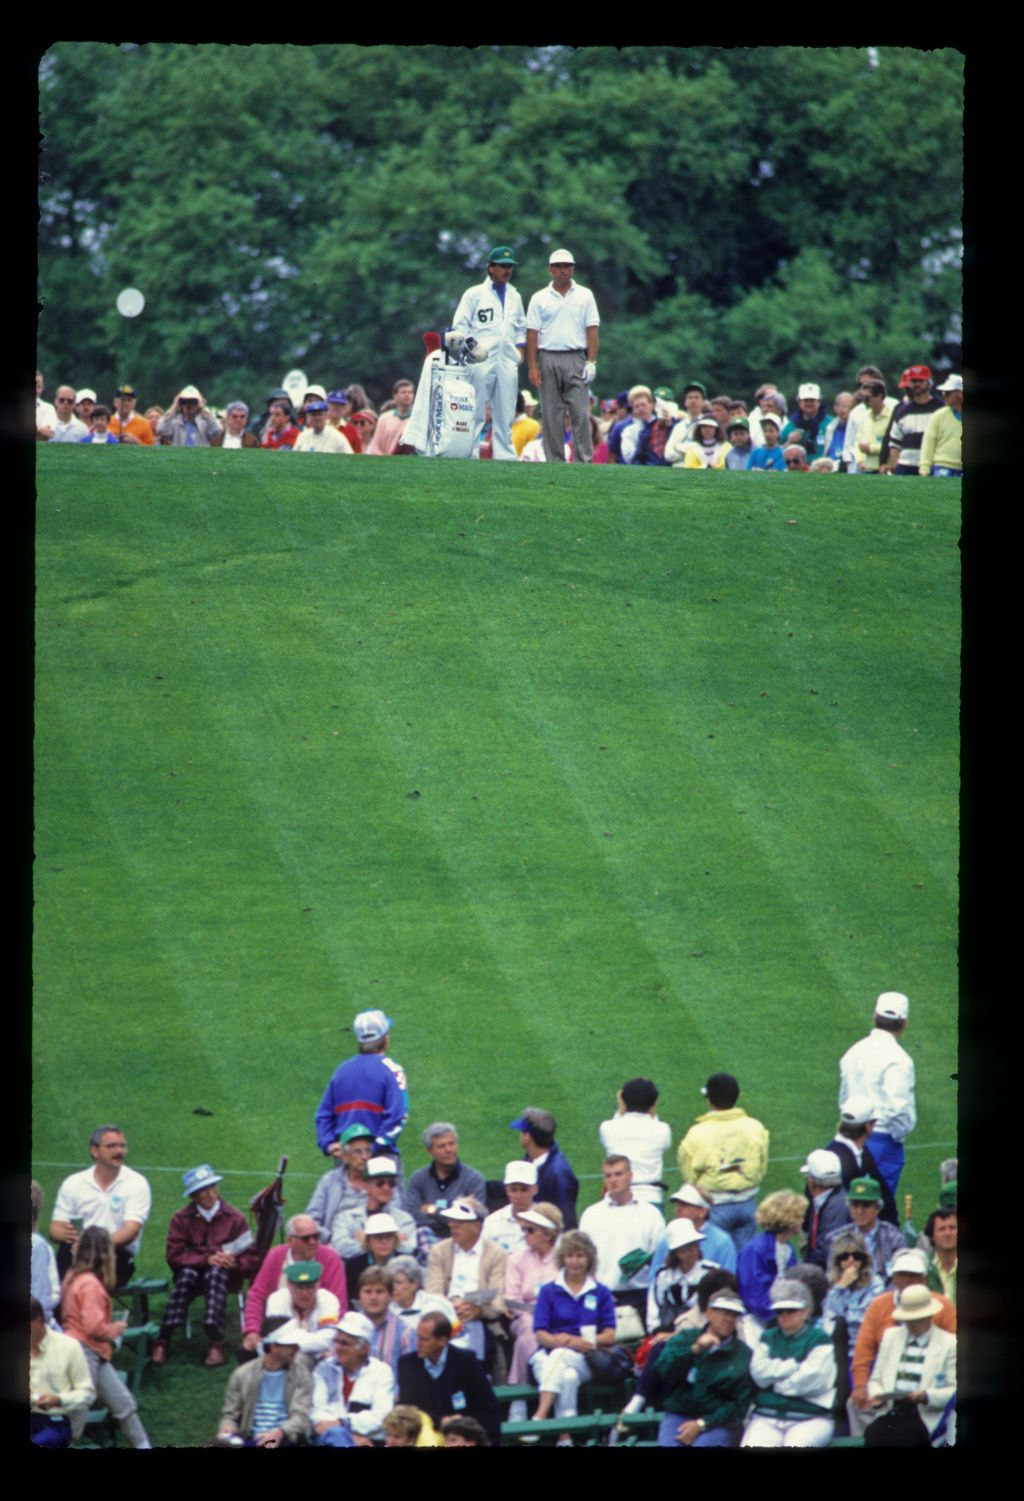 Mark O'Meara and his caddie on the tee during the 1989 Masters